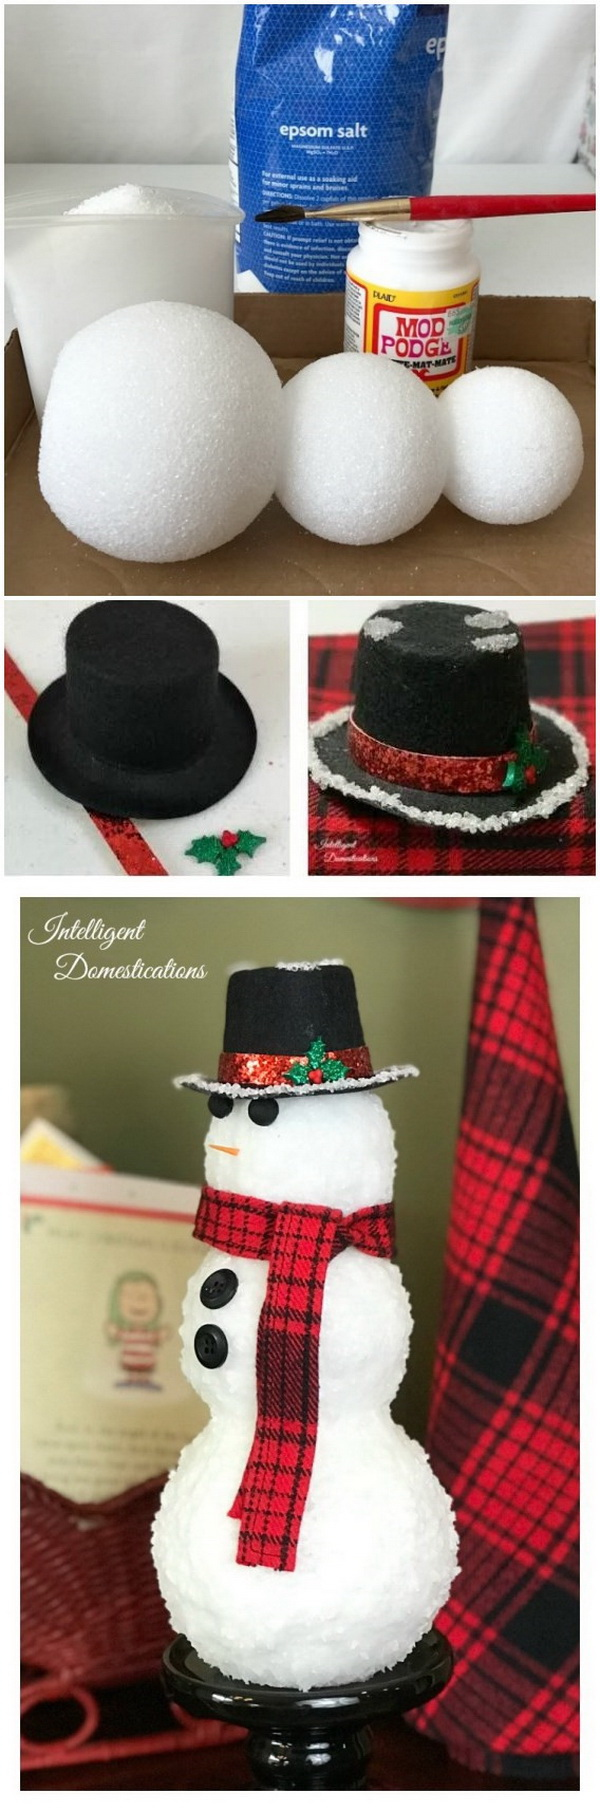 Authentic Looking Snowman.